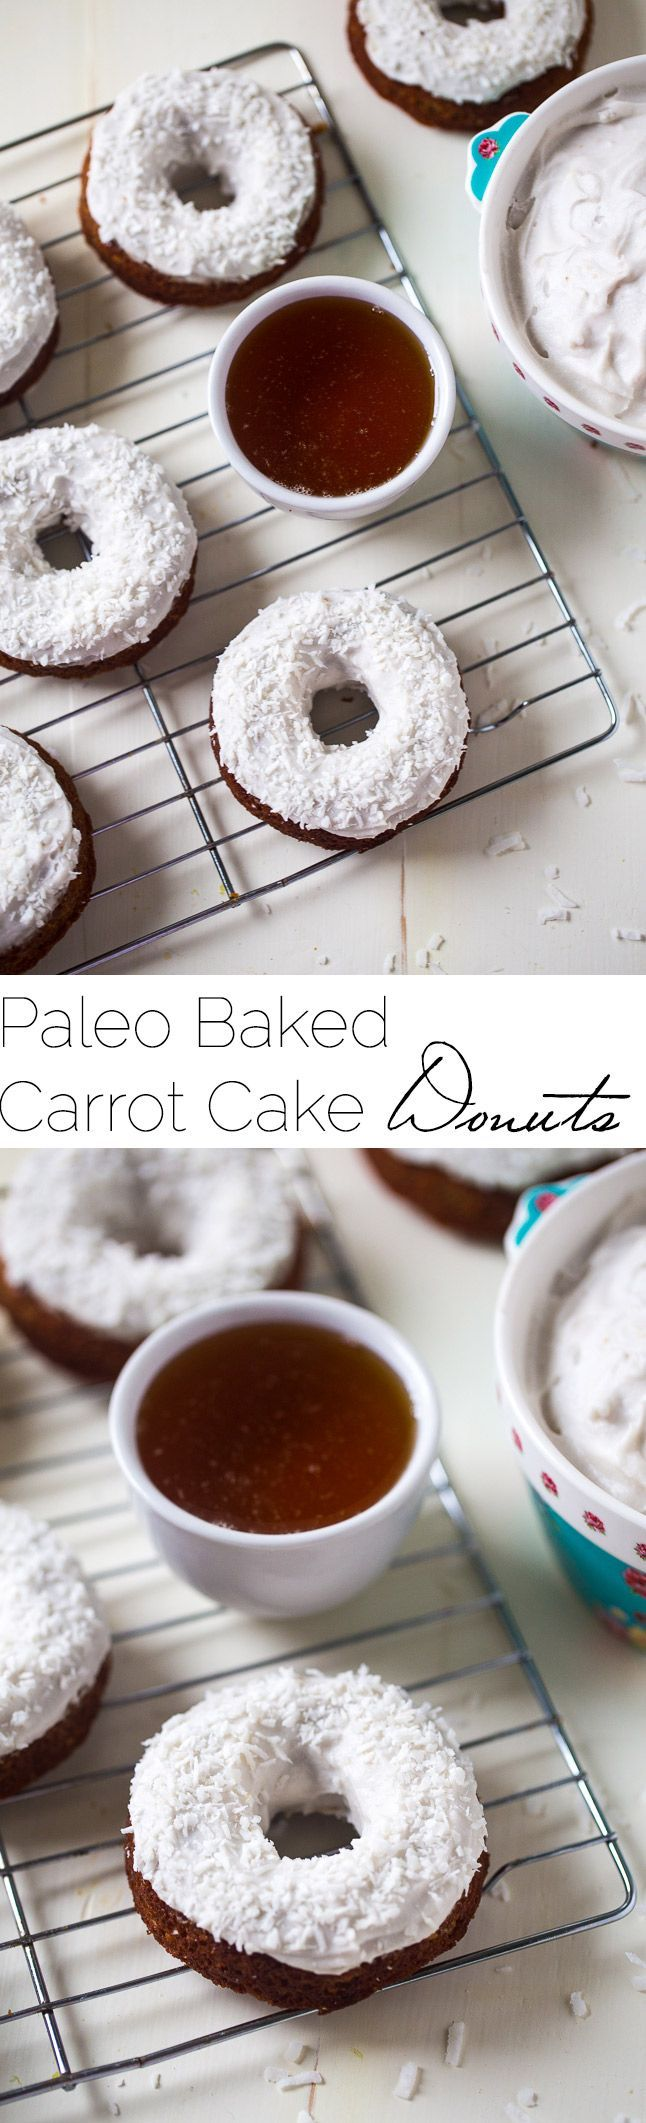 Gluten Free Carrot Cake Baked Donuts - Made in one bowl, healthy and Paleo friendly! Coconut cream frosting add the perfect, Easter touch!   Foodfaithfitness.com   @FoodFaithFit